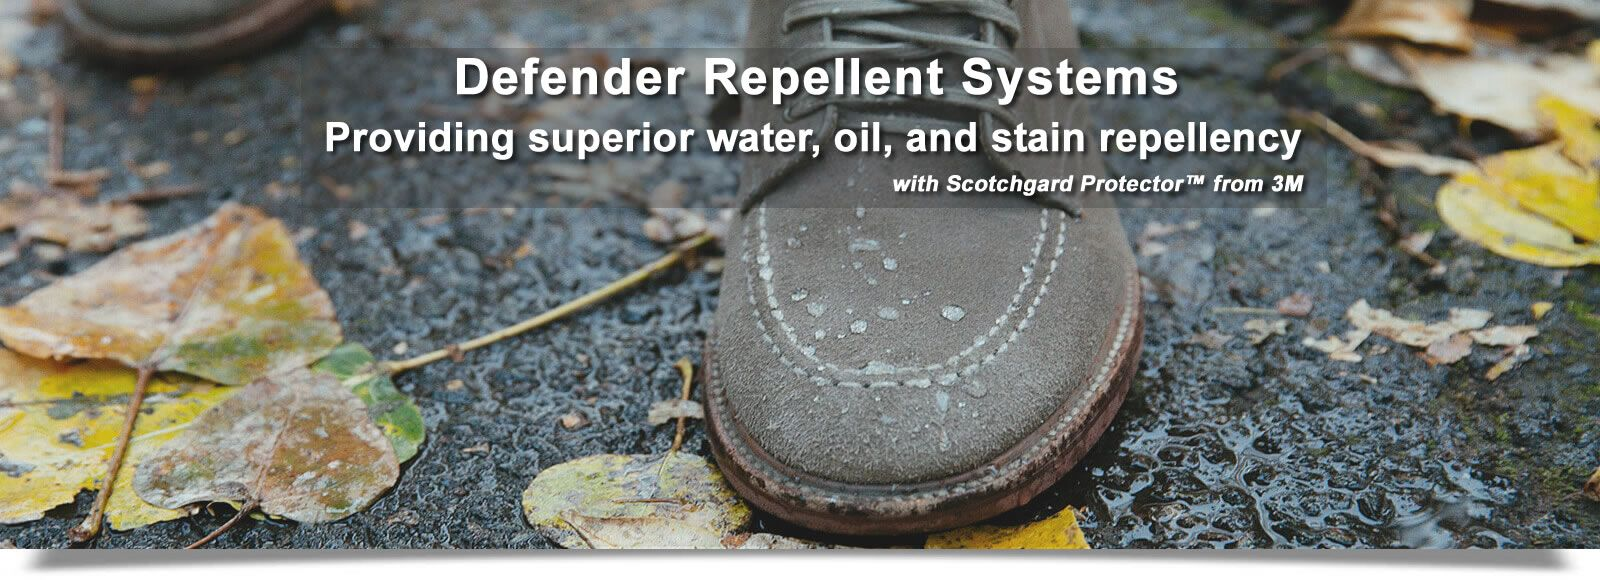 defender repellent, Shoe protector, Shoe Repellent, Leather Repellent, Shoe Waterproof